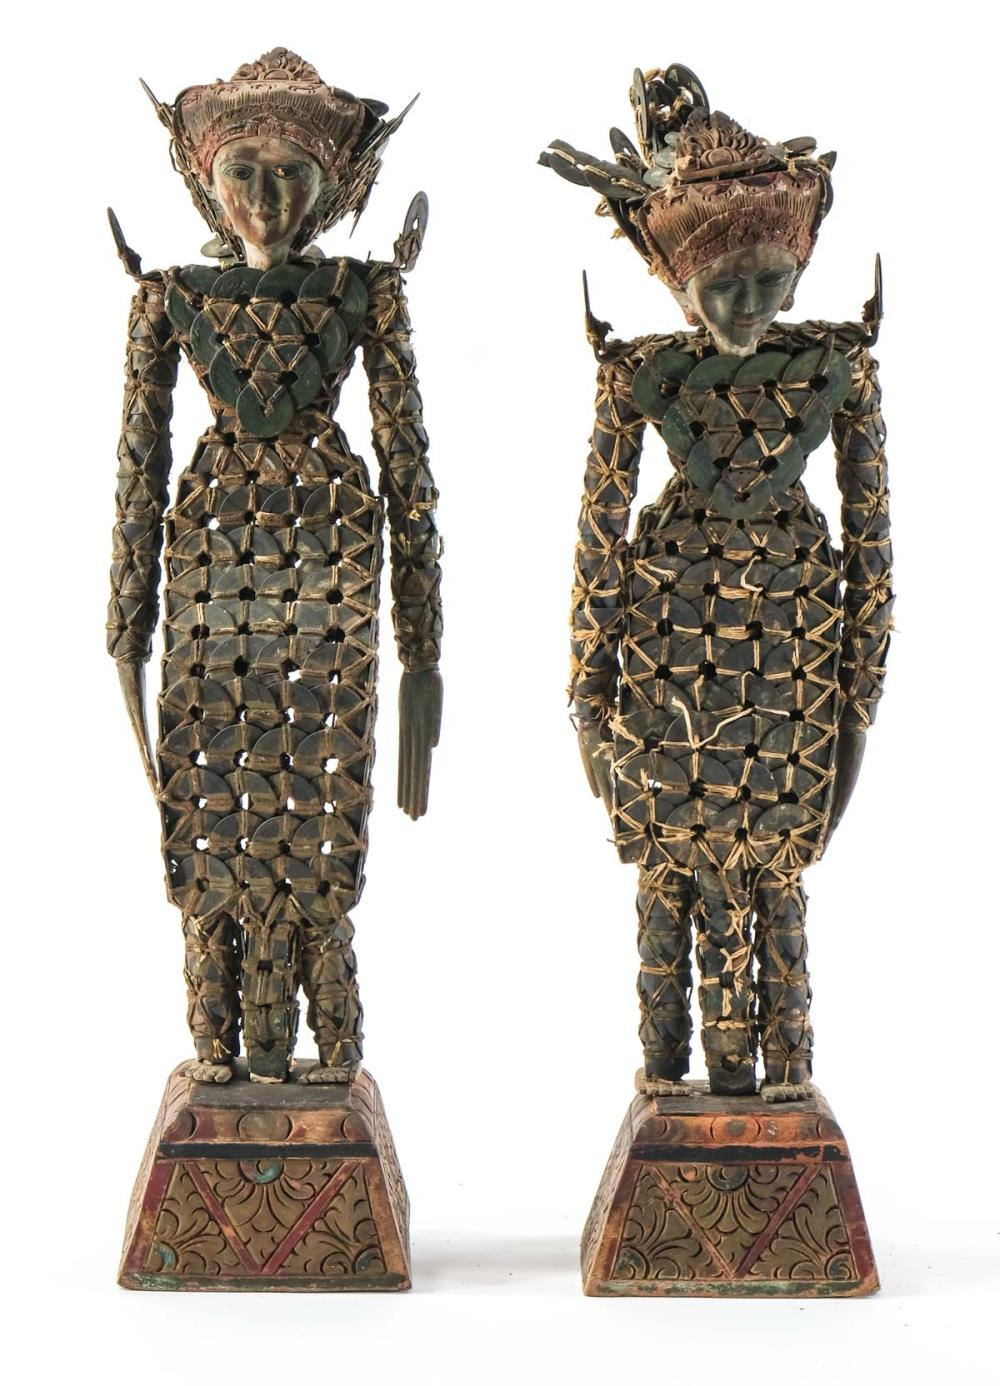 Pair of Balinese Coin Figures